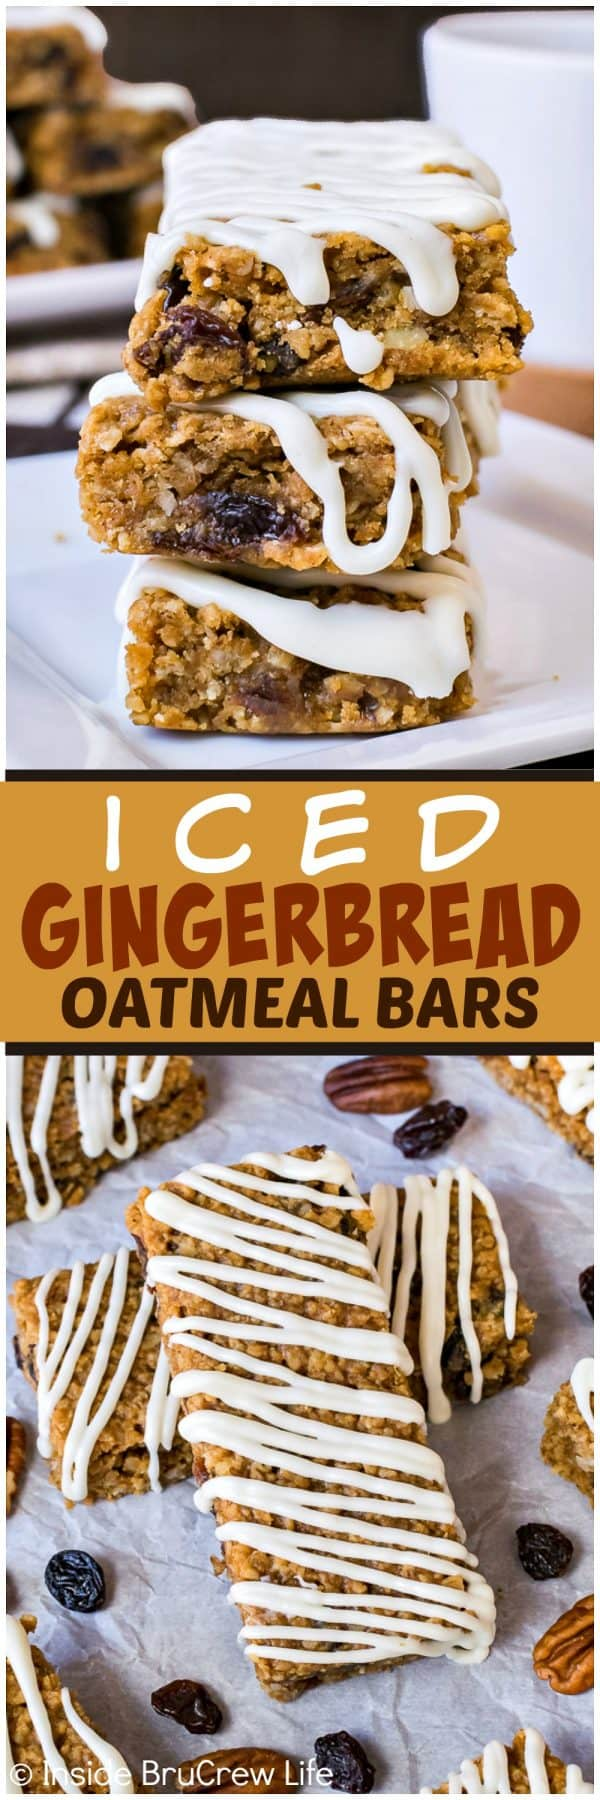 Iced Gingerbread Oatmeal Bars - sweet baked oatmeal bars loaded with spices, raisins, and nuts are delicious any time of day. Great recipe for breakfast or after school snacks!